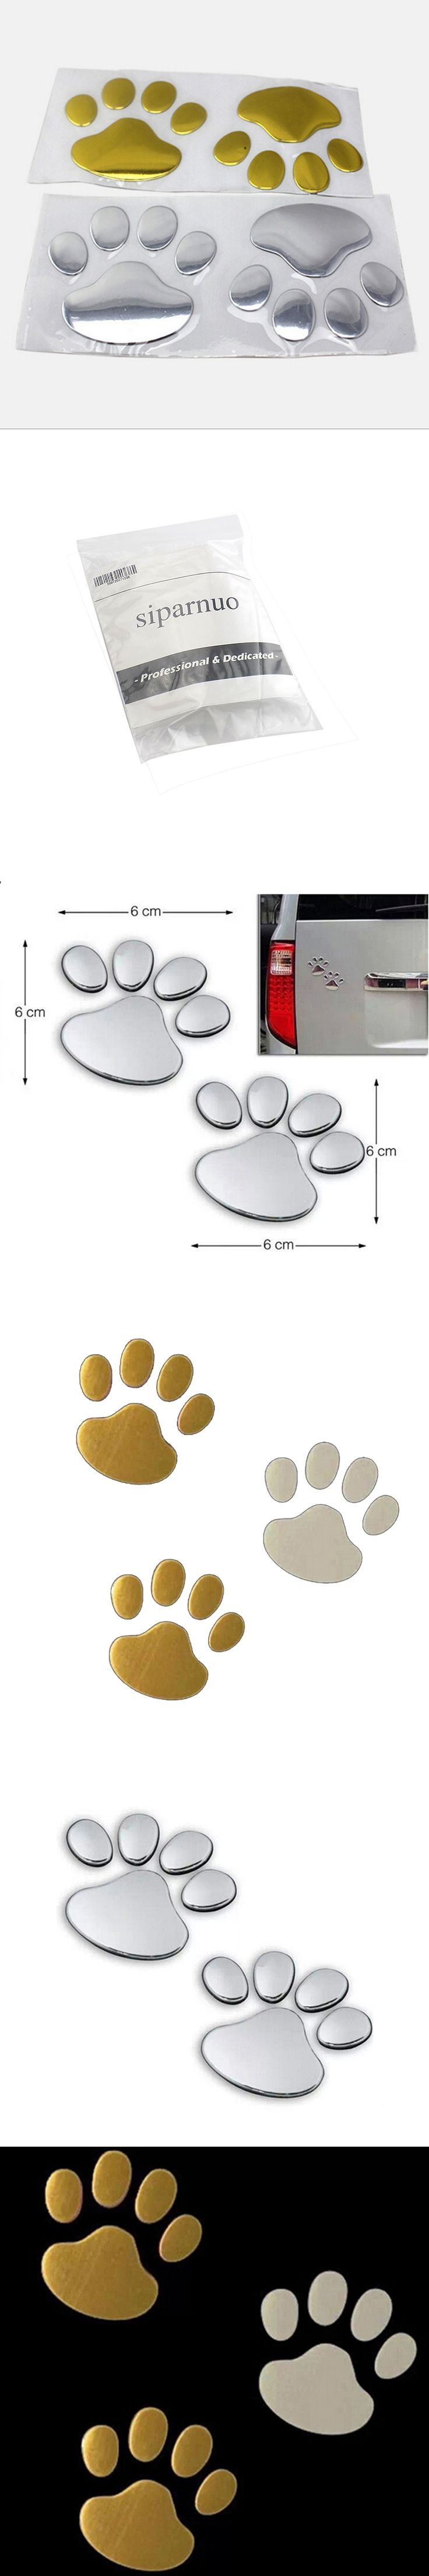 siparnuo Car styling Cat Footprint Style 3D Car Sticker Exterior Decoration Custom Car Stickers Styling